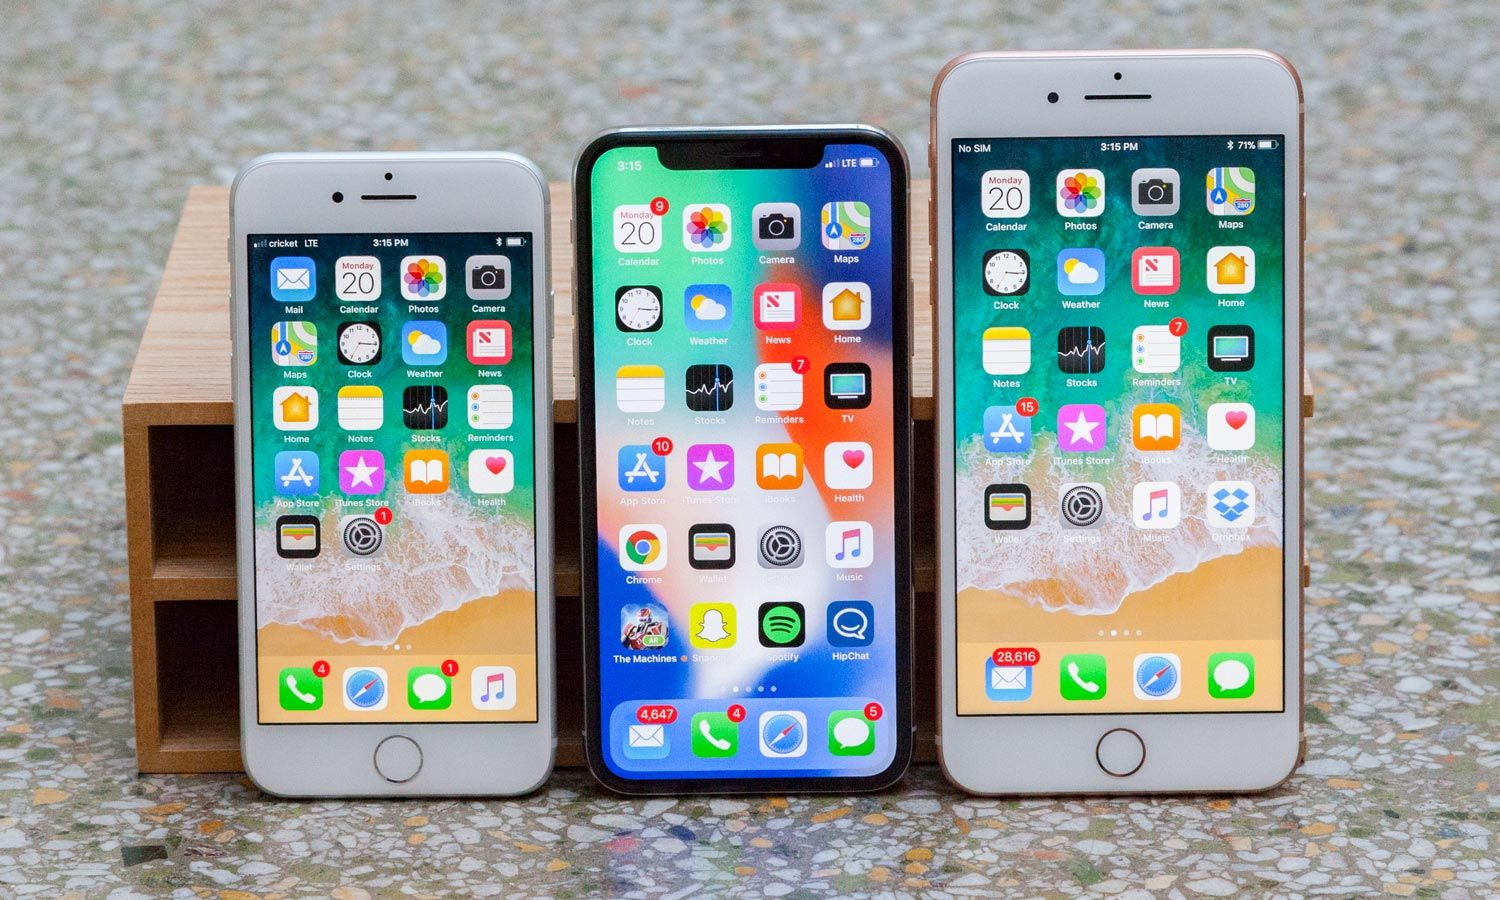 The Next Iphone 2018 Rumors About The Iphone 9 X2 And Se2 Iphone Iphone 9 Apple Products